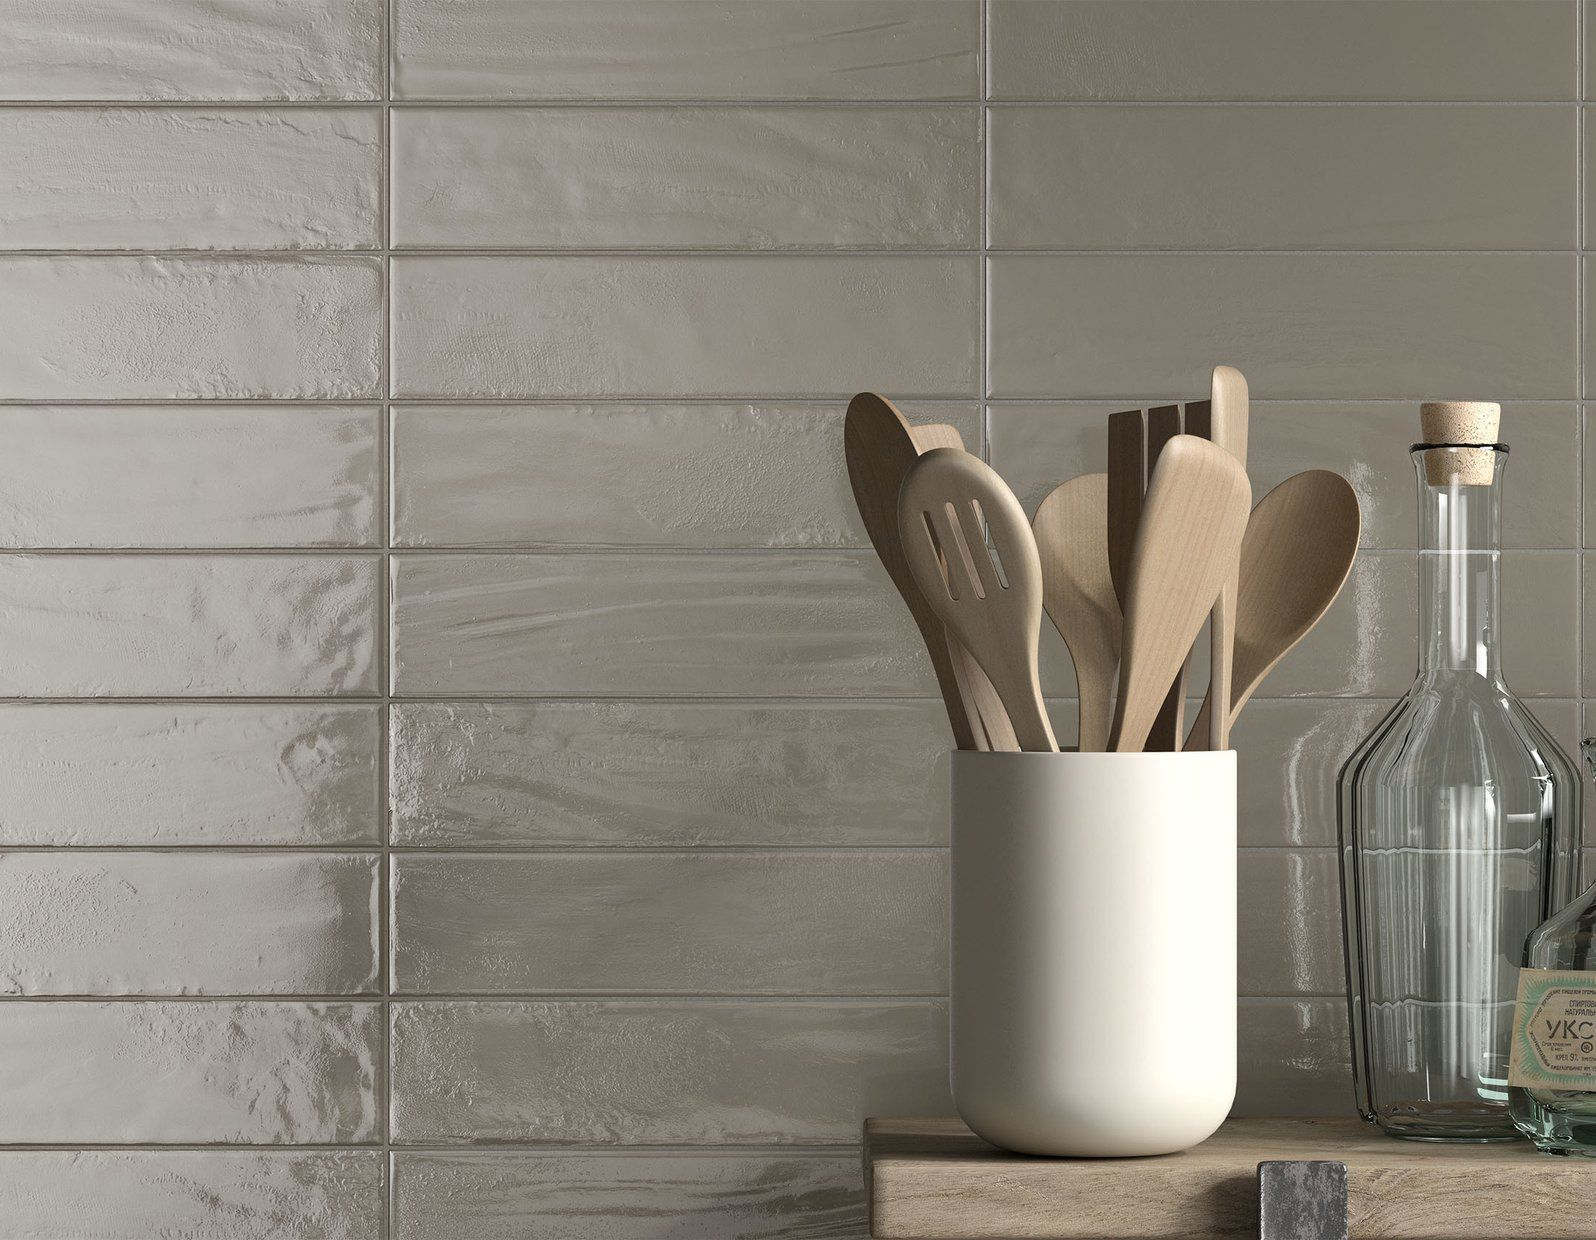 Kitchen Tile Bathroom Wall Porcelain Stoneware